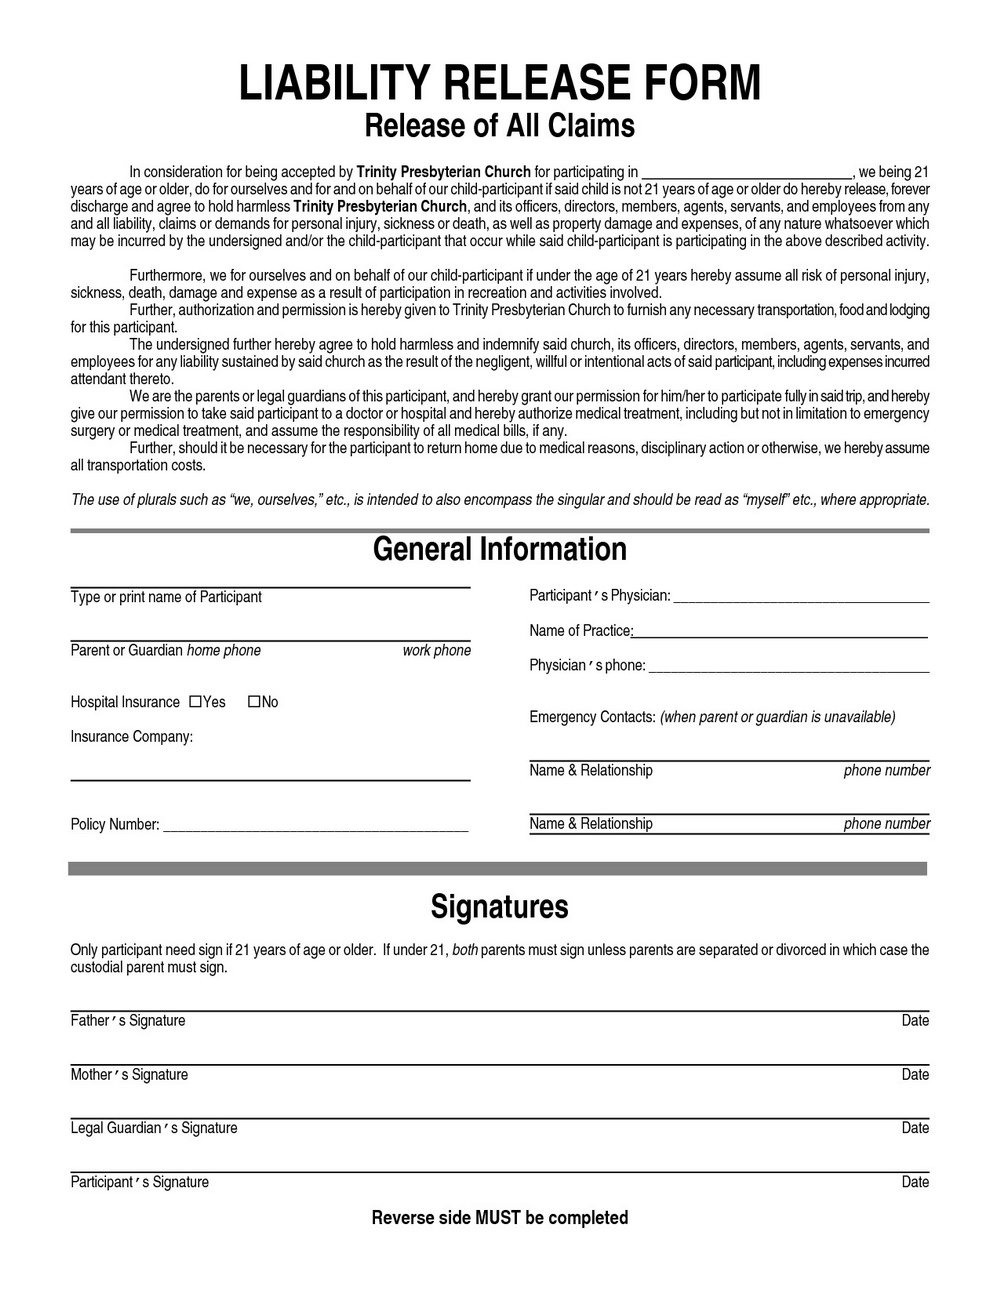 General Release Of Liability Form Template